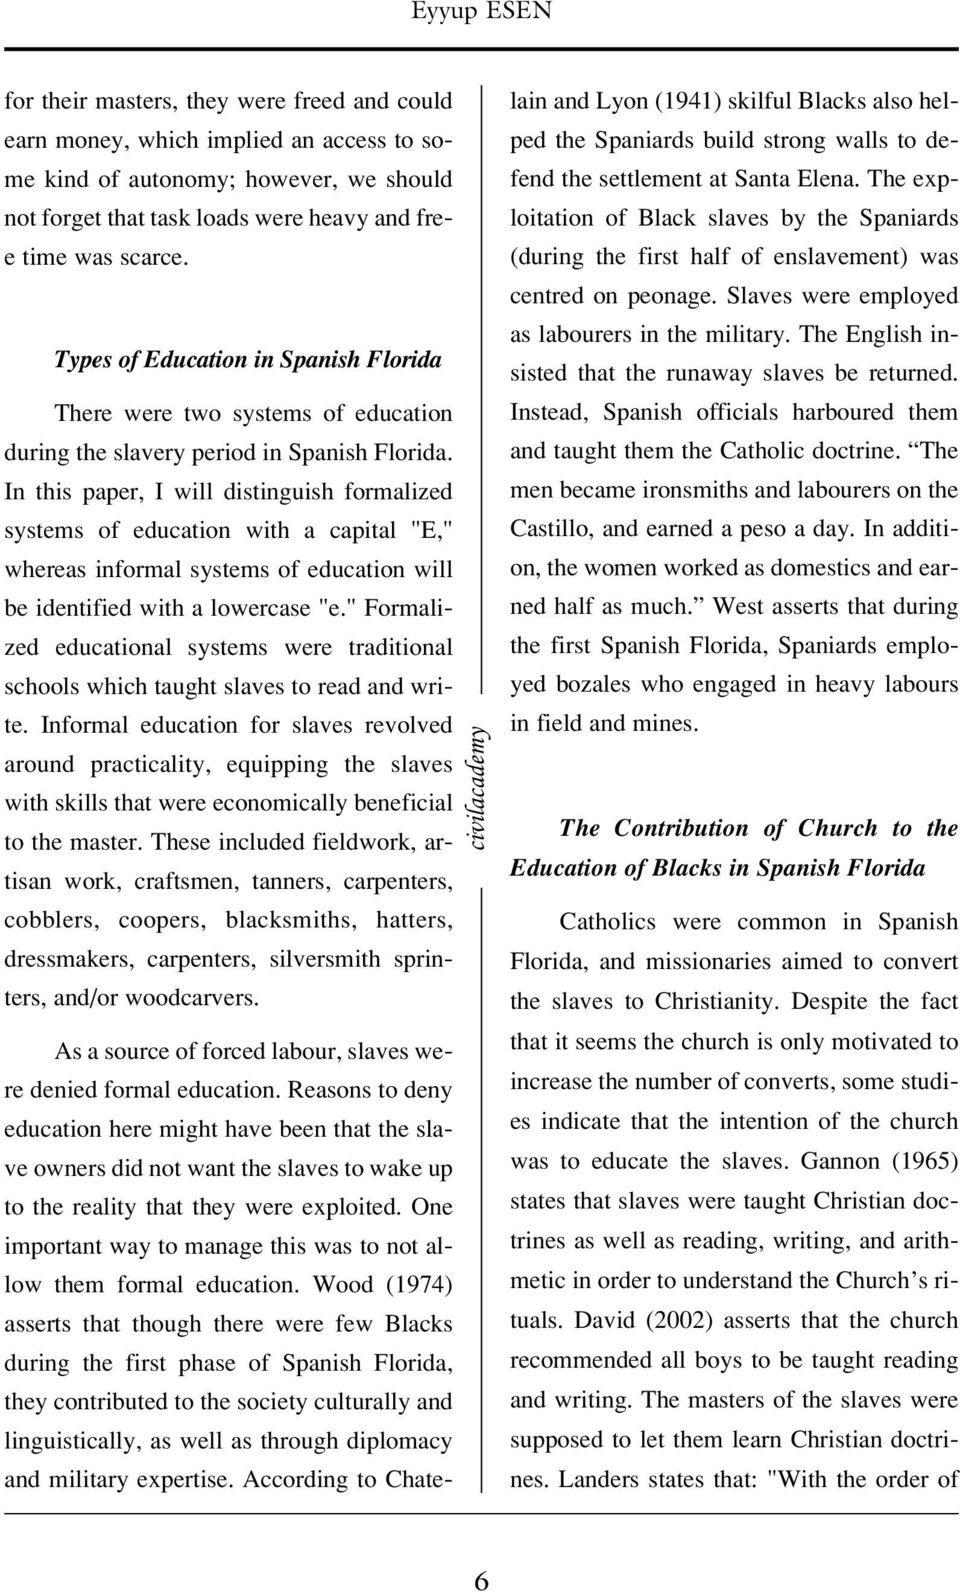 "In this paper, I will distinguish formalized systems of education with a capital ""E,"" whereas informal systems of education will be identified with a lowercase ""e."